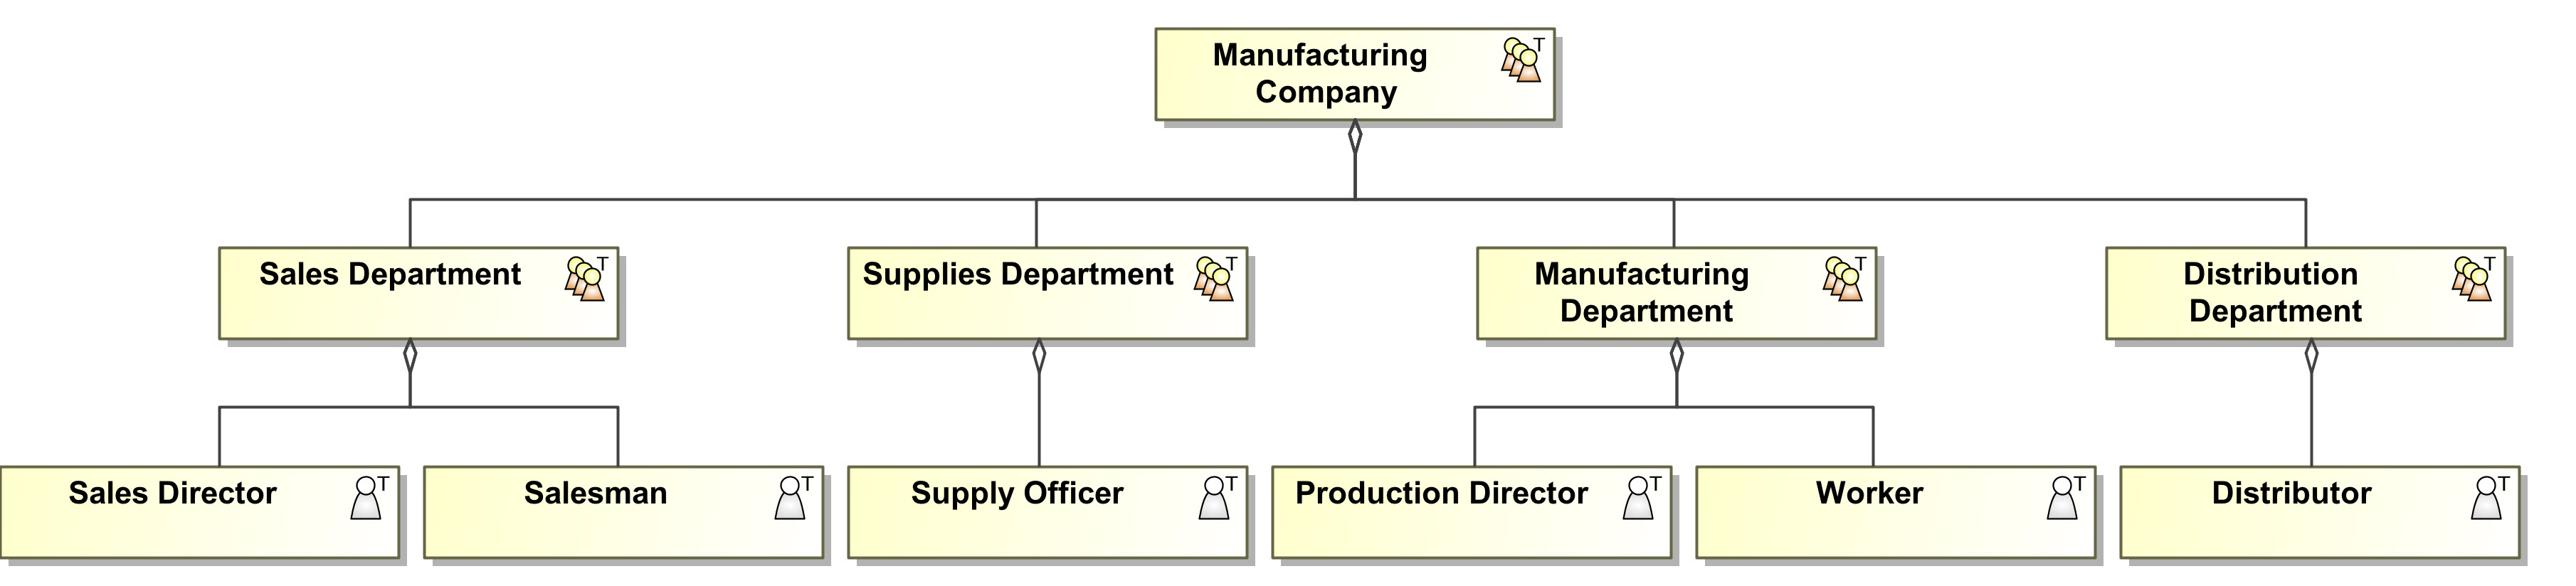 Figure 2. Organization Structure Diagram showing departments and job roles inside them